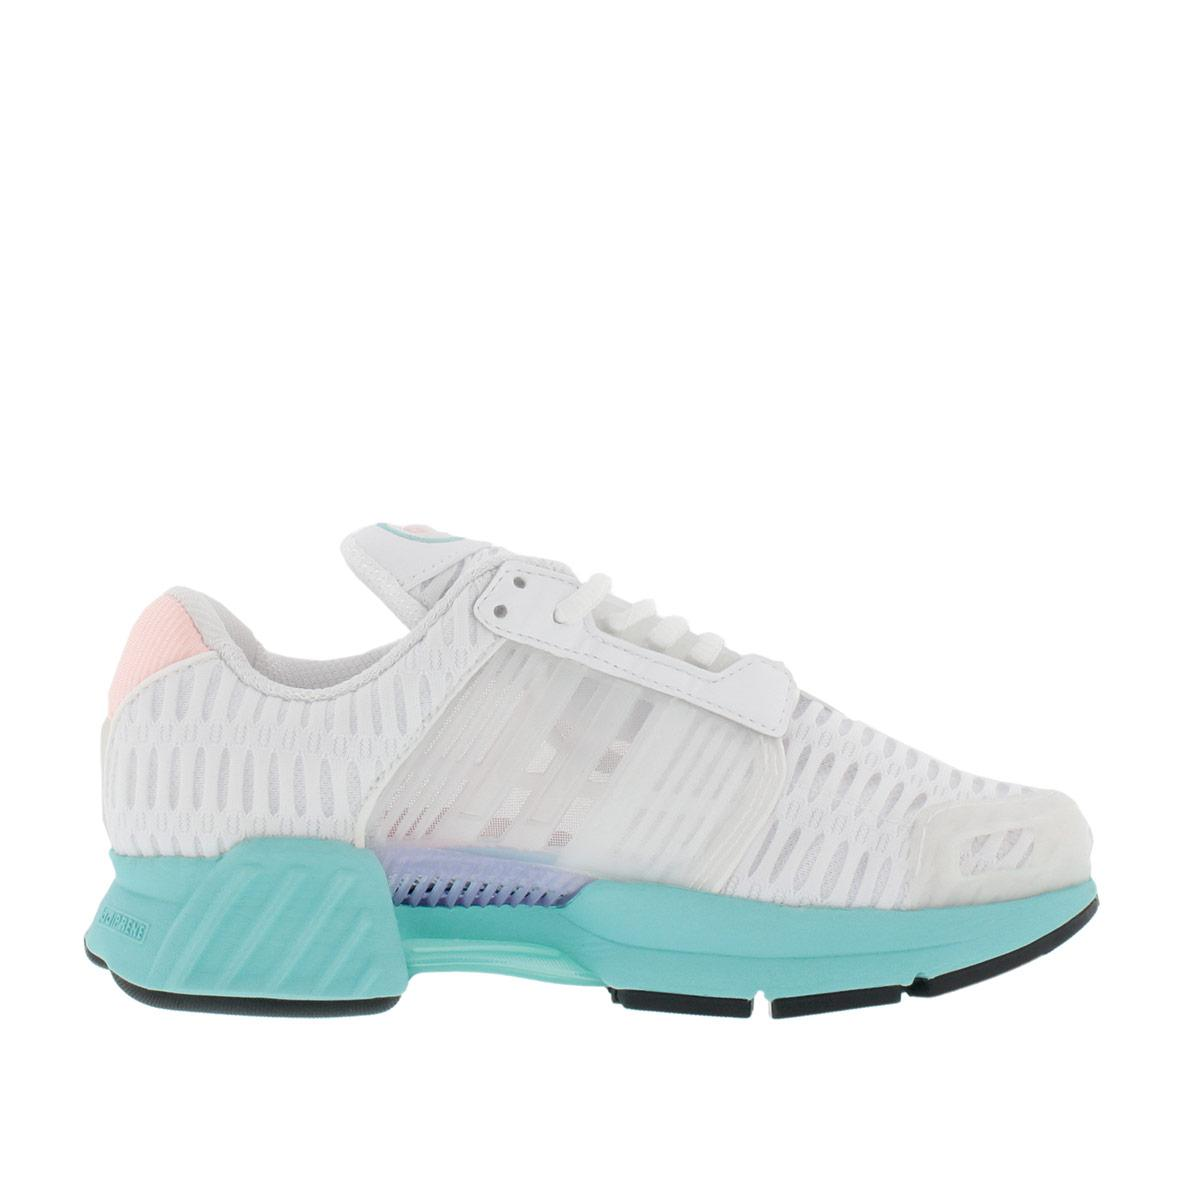 92a76f1706 adidas Originals Women's Climacool 1 Sneaker White/mint in White - Lyst